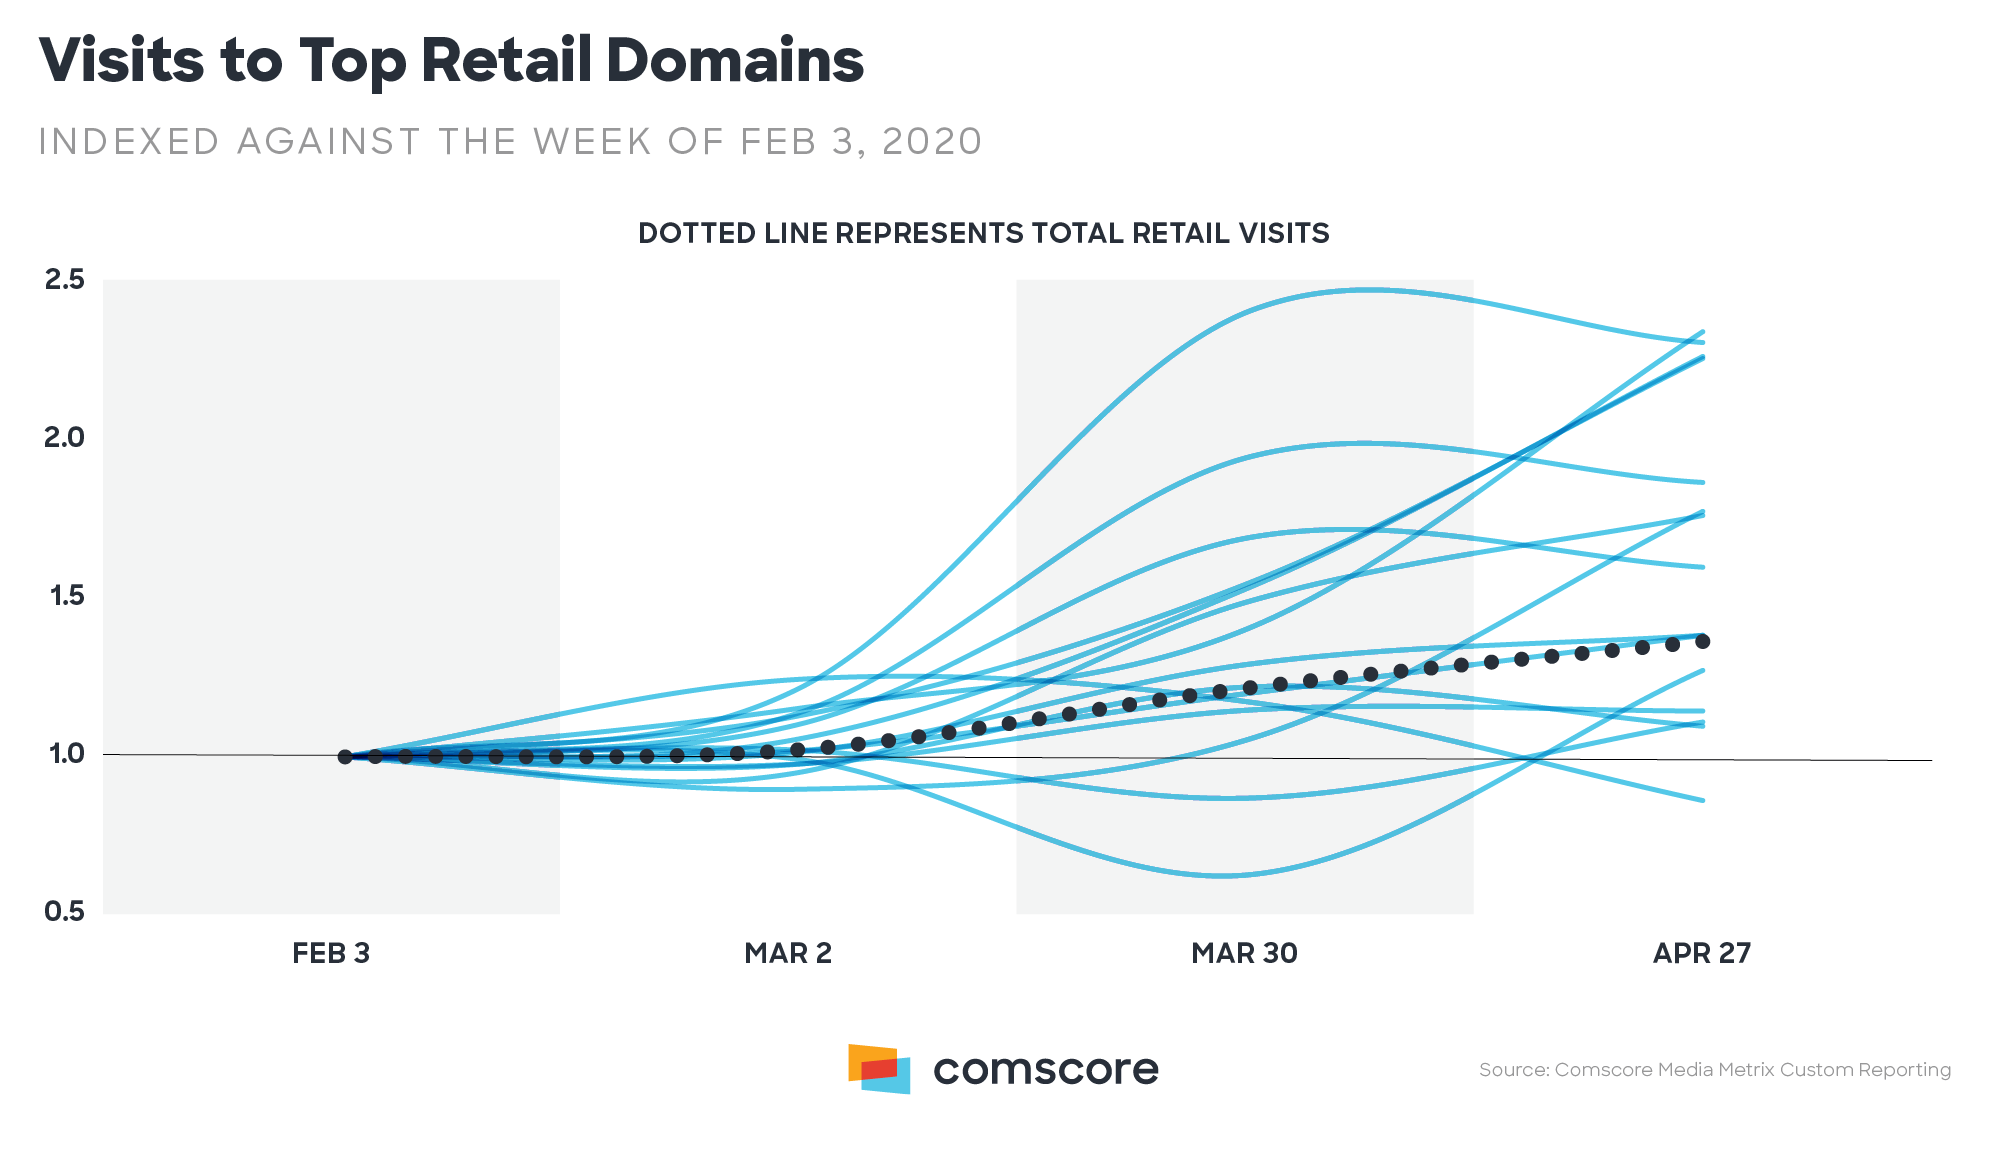 Visits to Top Retail Domains